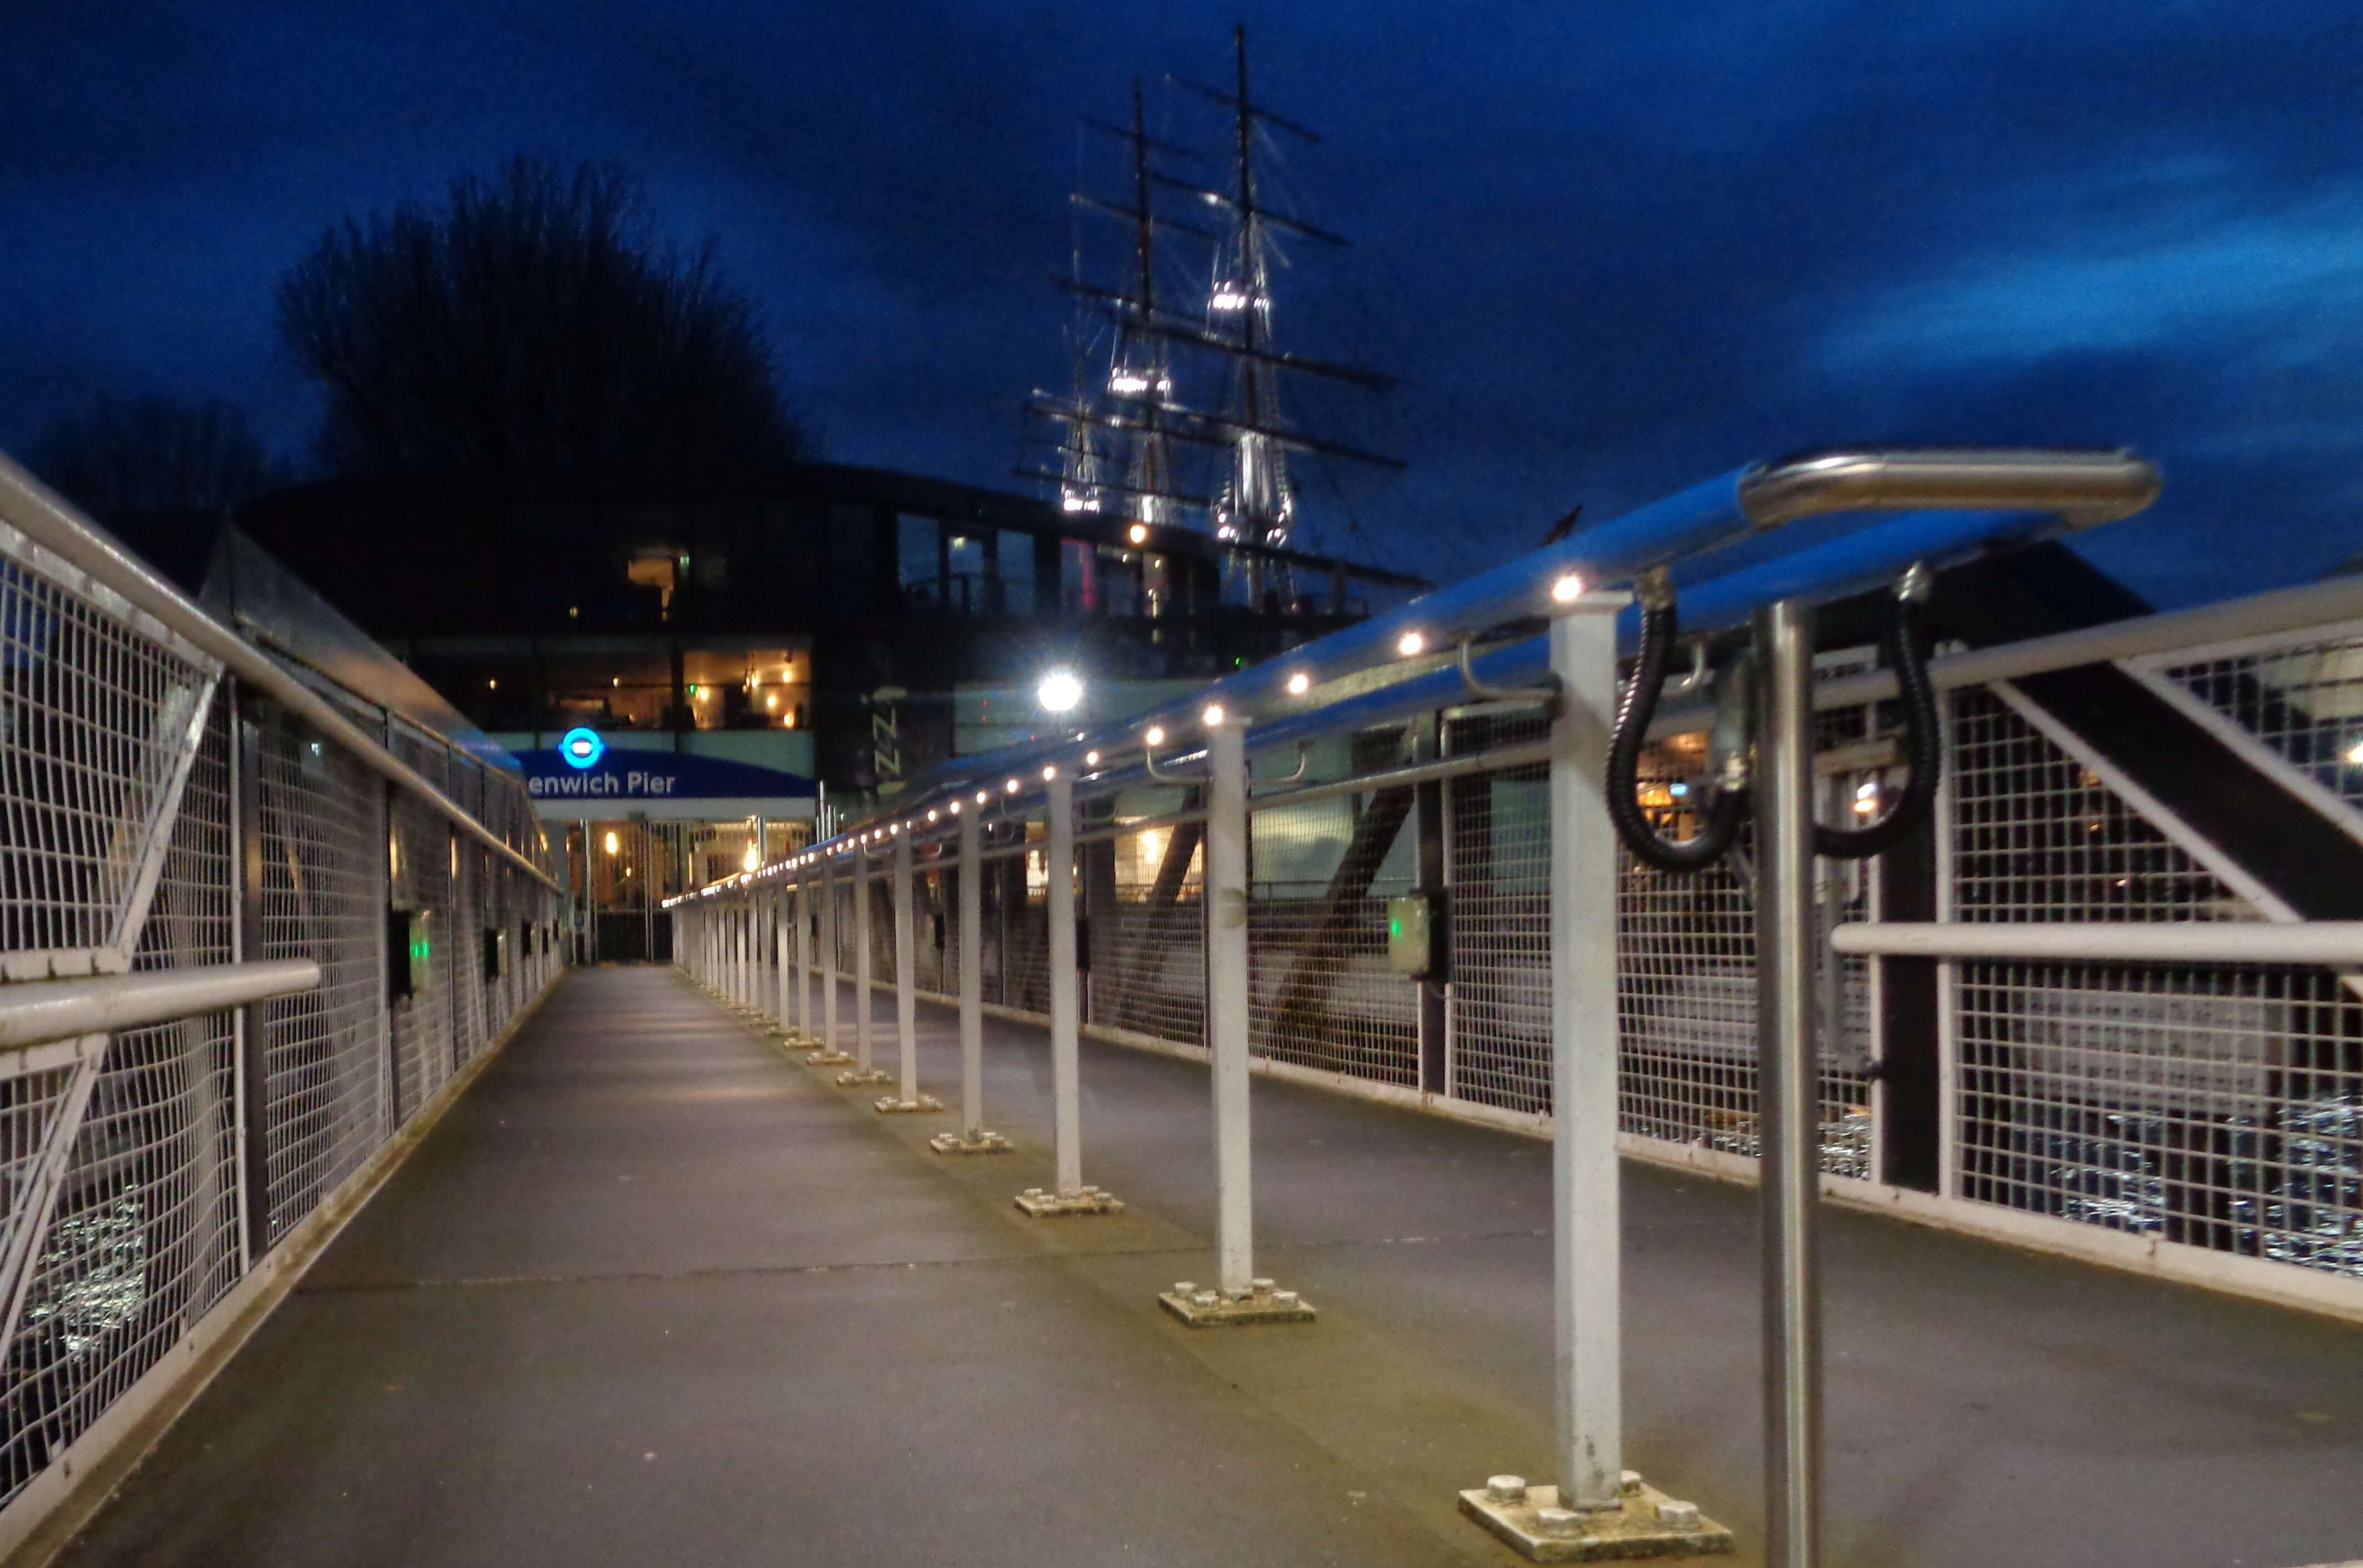 Illuminated handrail in Greenwich